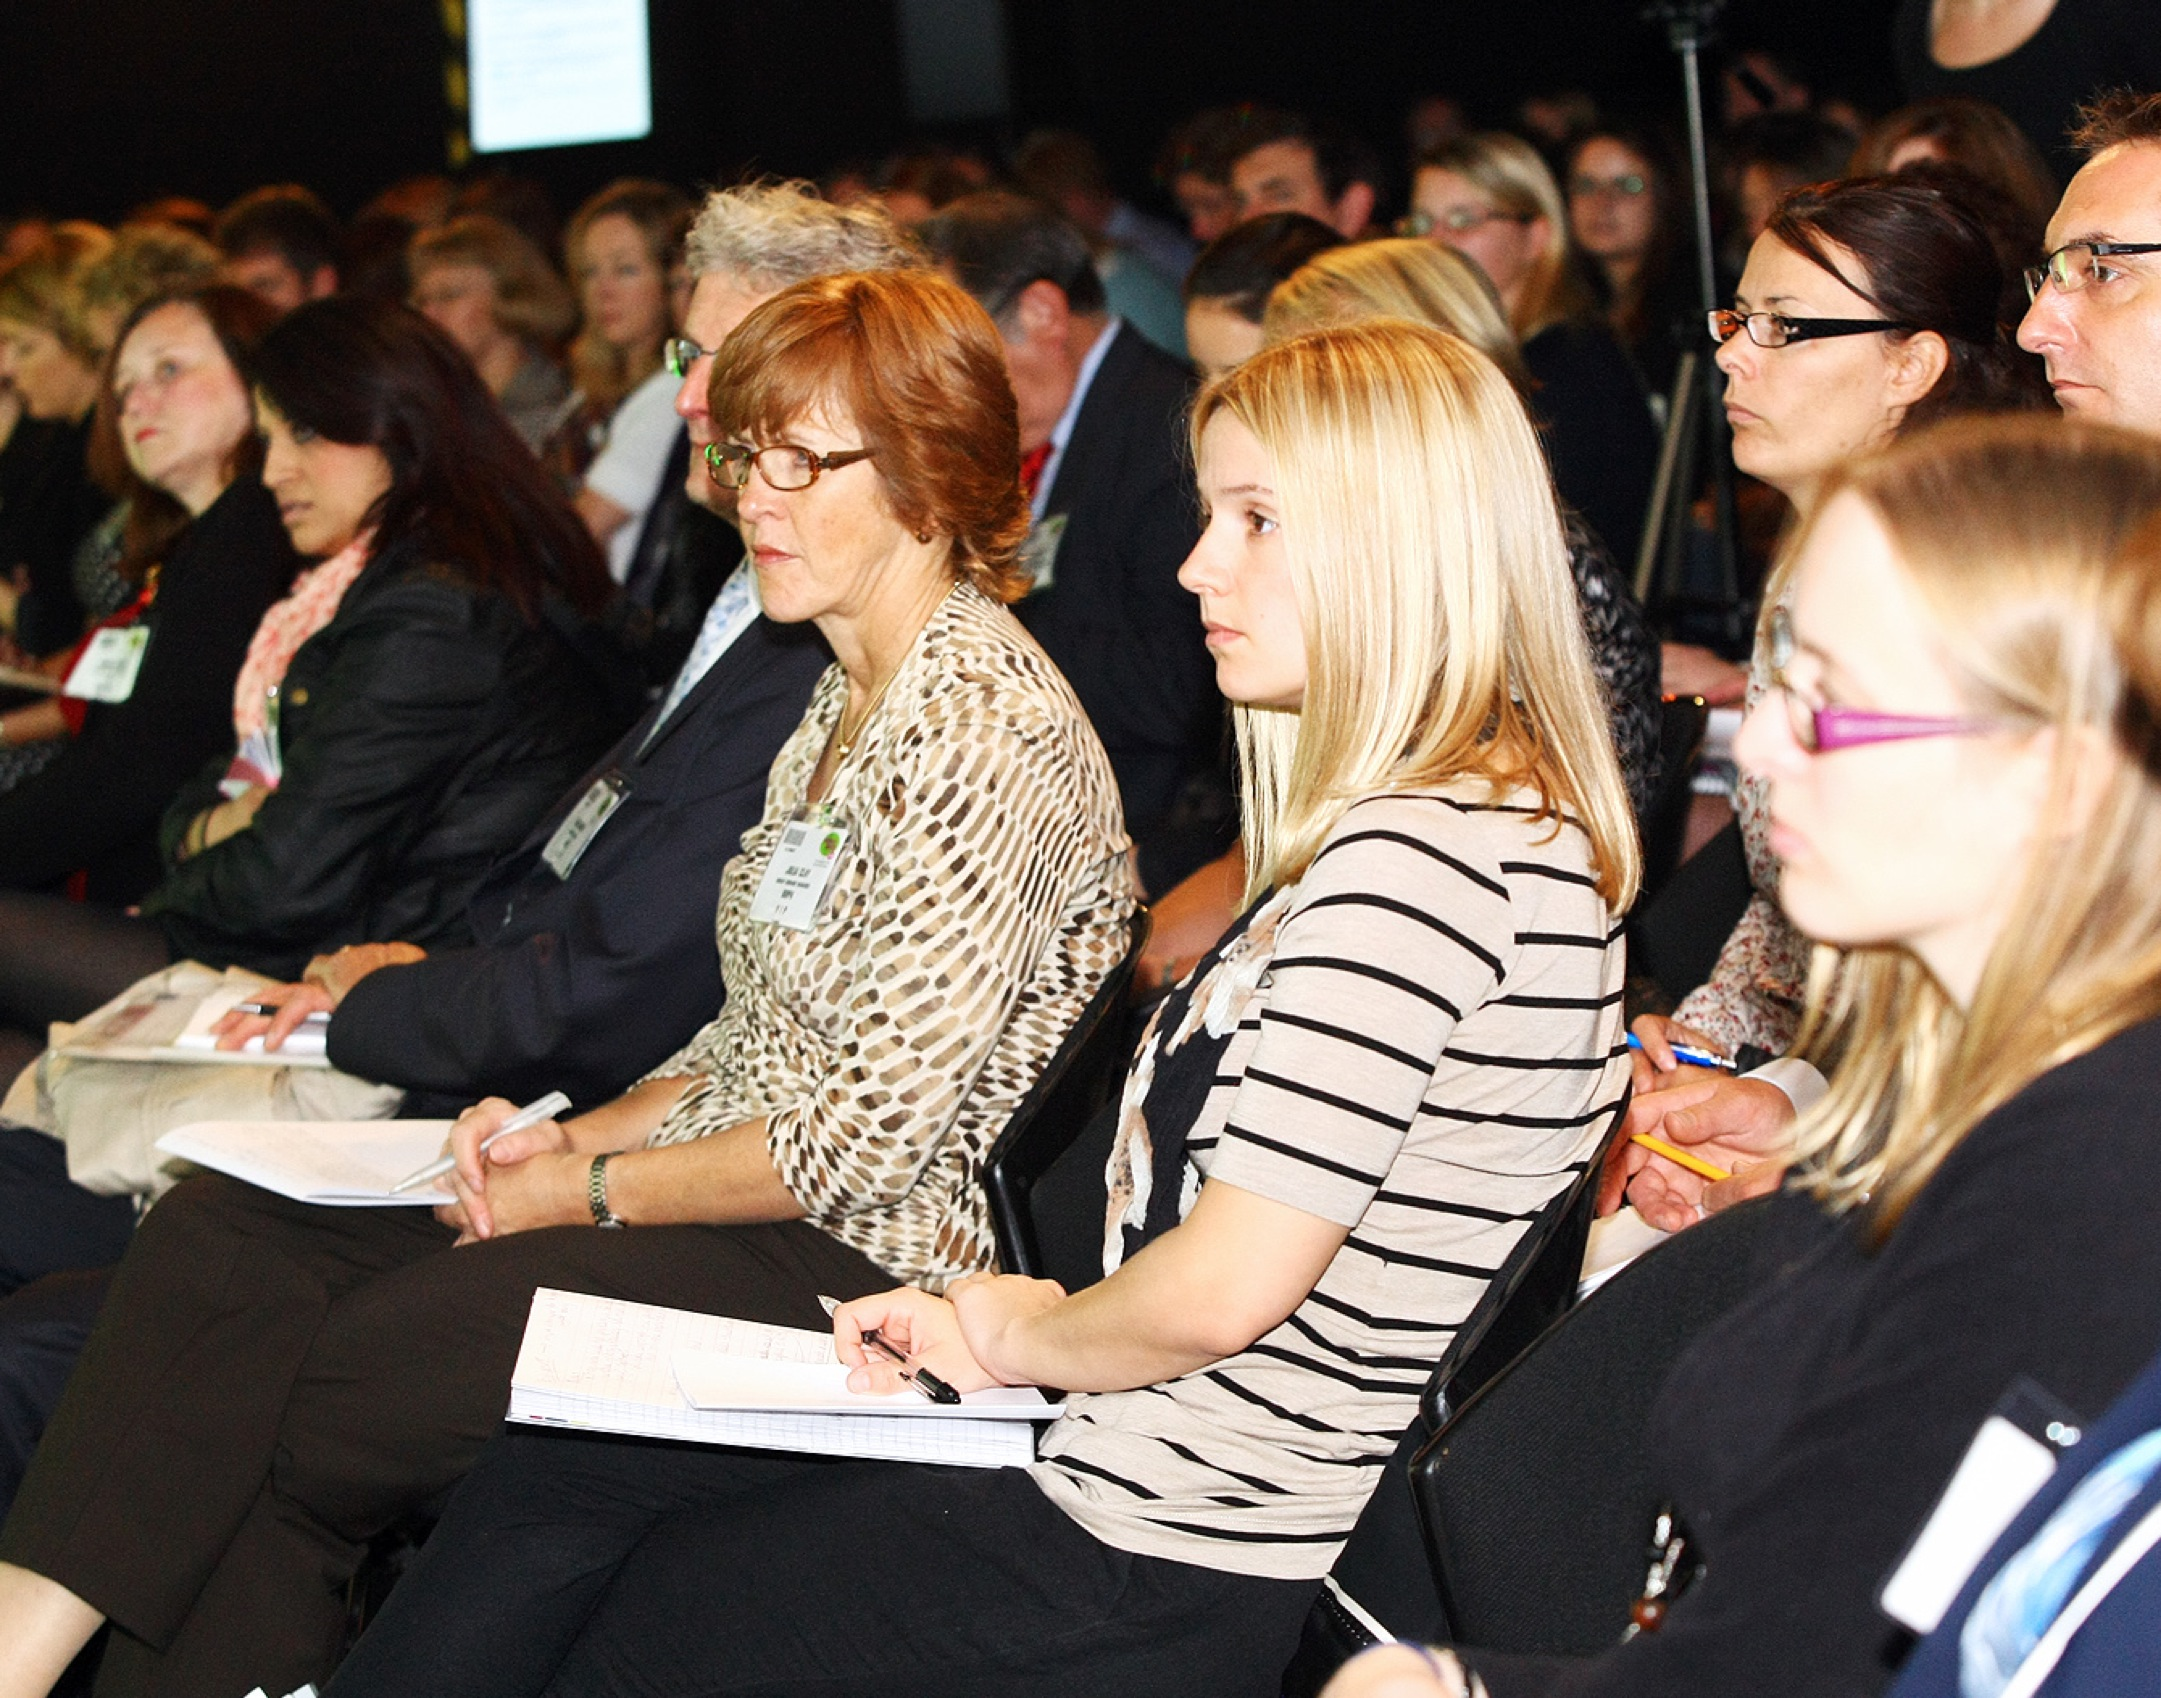 Employee-Benefits-Live-2012-conference-1